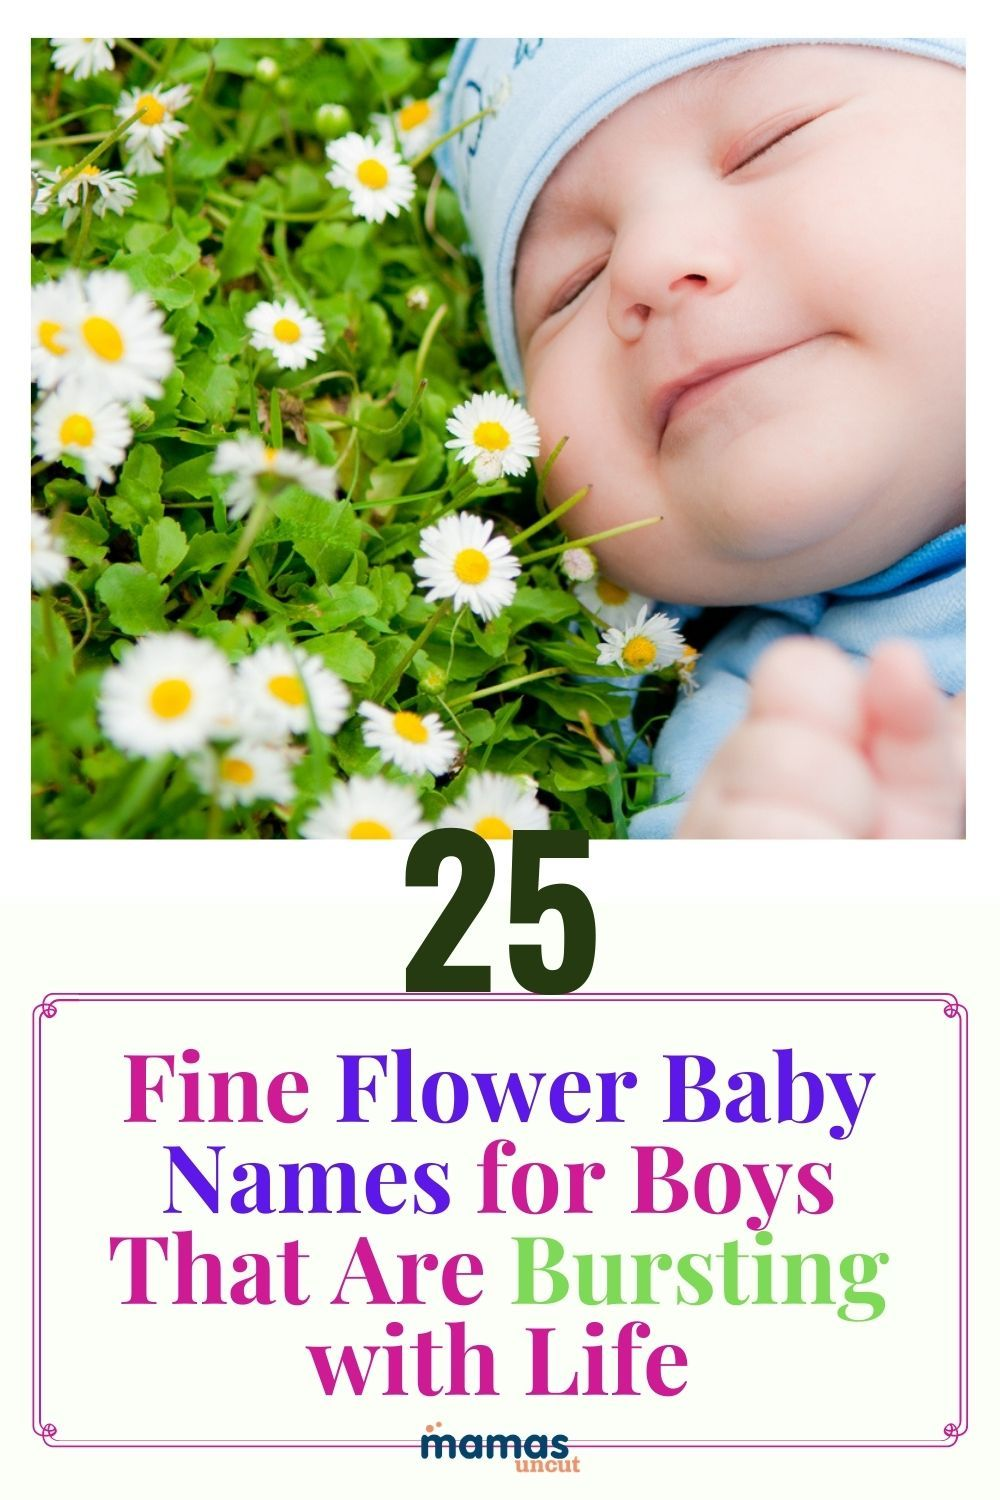 25 Fine Flower Baby Names for Boys That Are Bursting with